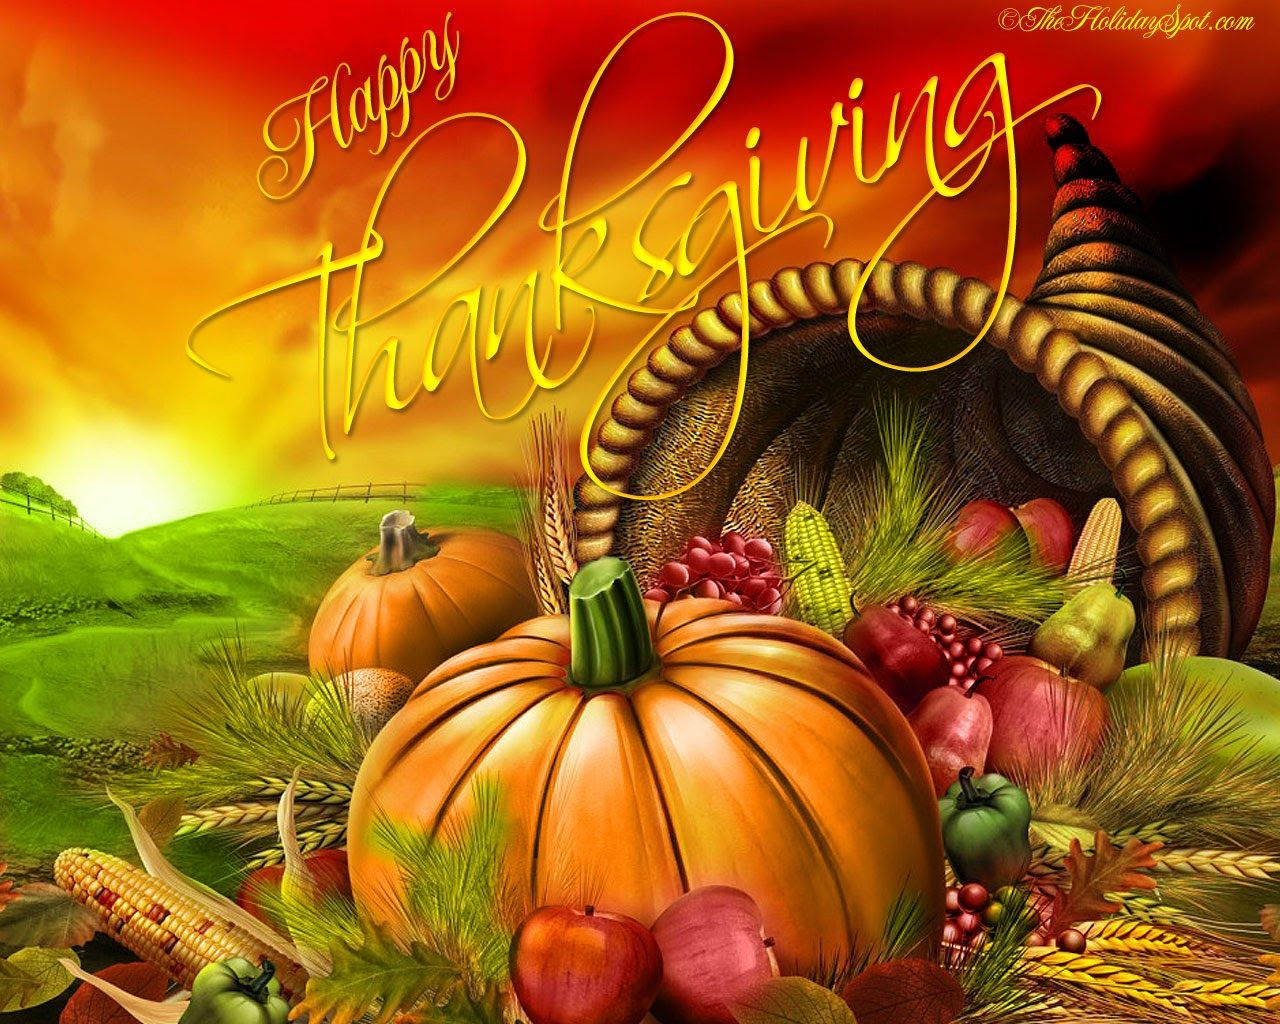 Have A Blessed Thanksgiving Everyone Xo Susie Homemaker Httpwww